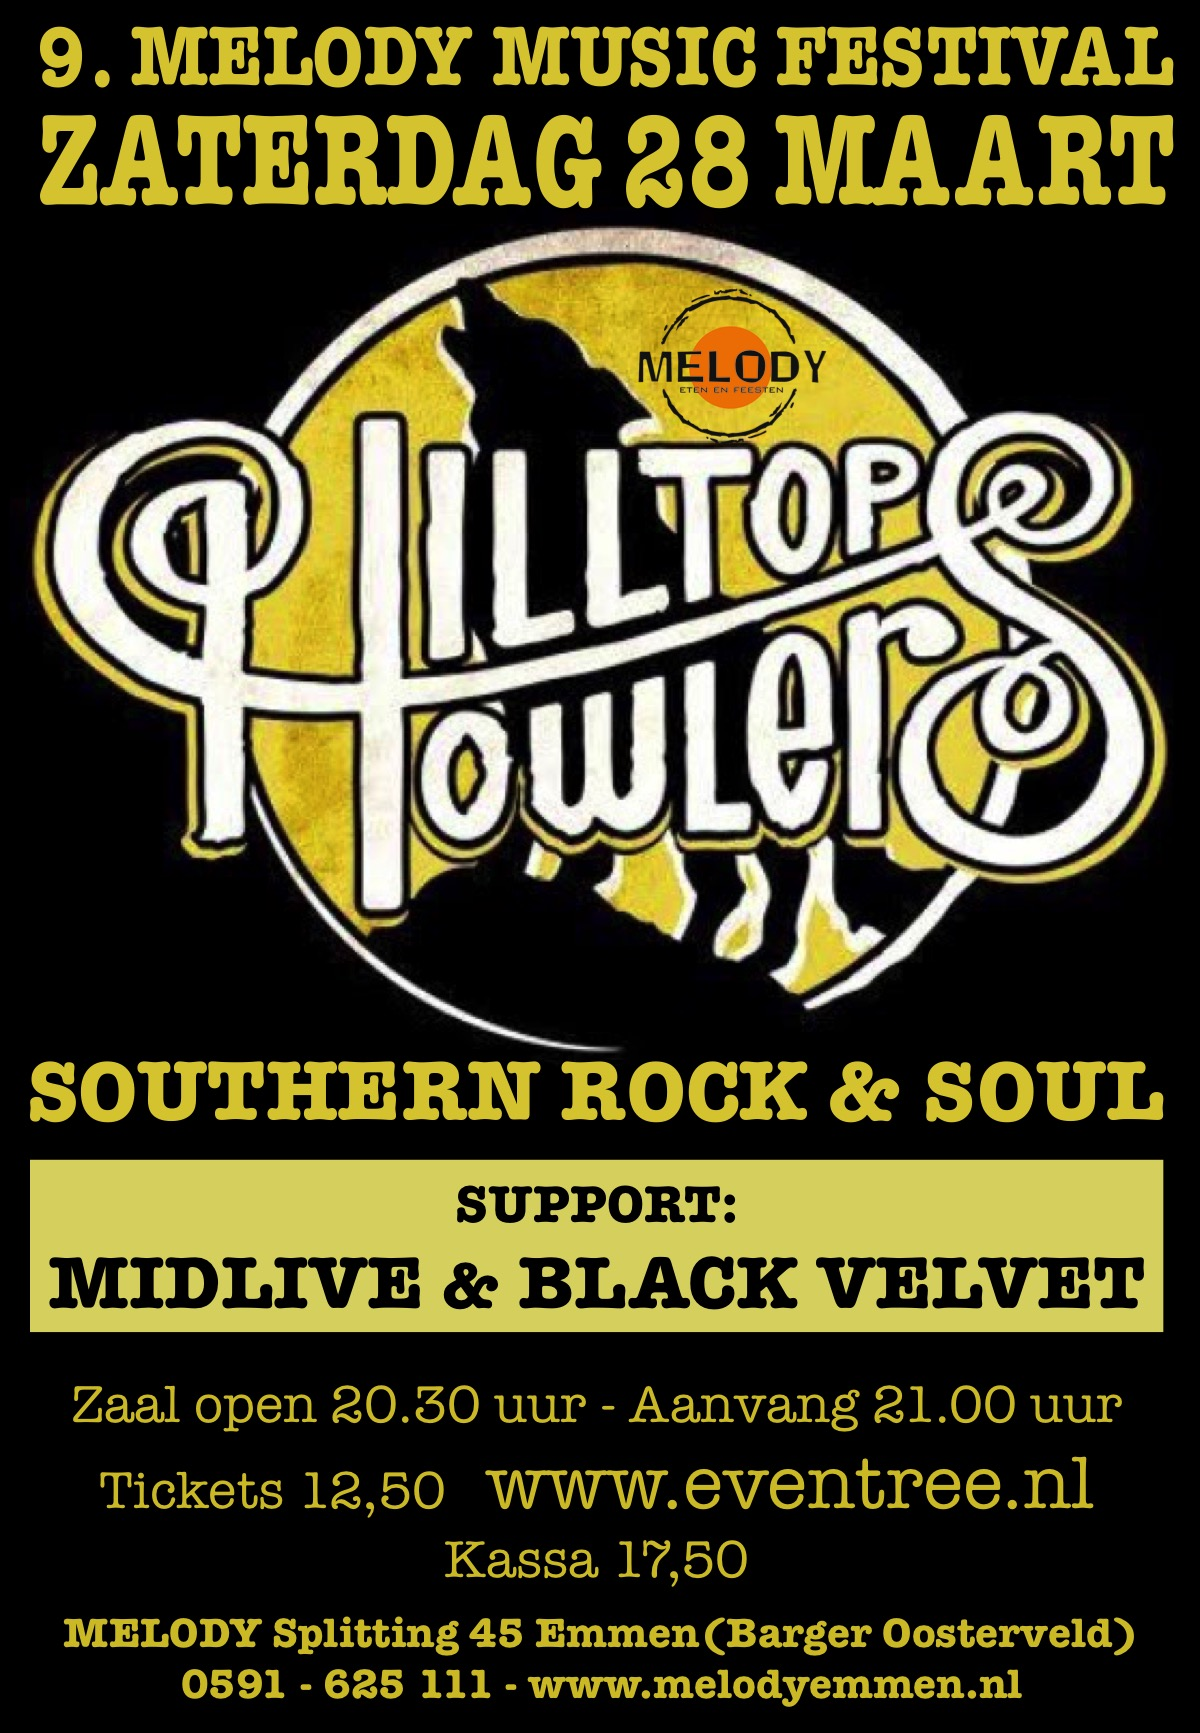 9. Melody Music Festival - HILLTOP HOWLERS